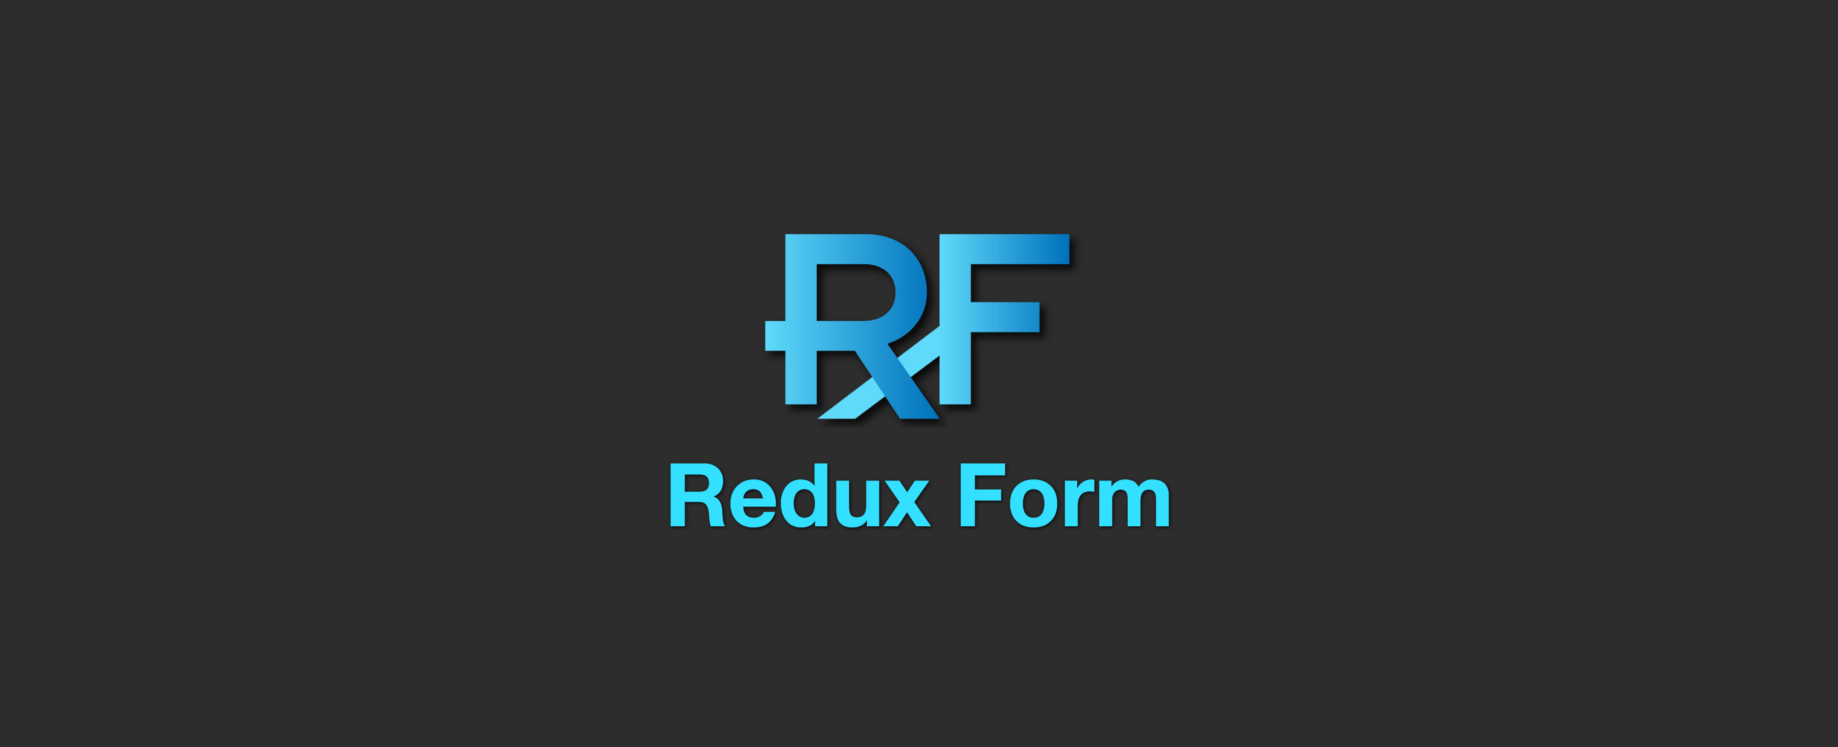 Why build your forms with Redux-Form - DailyJS - Medium